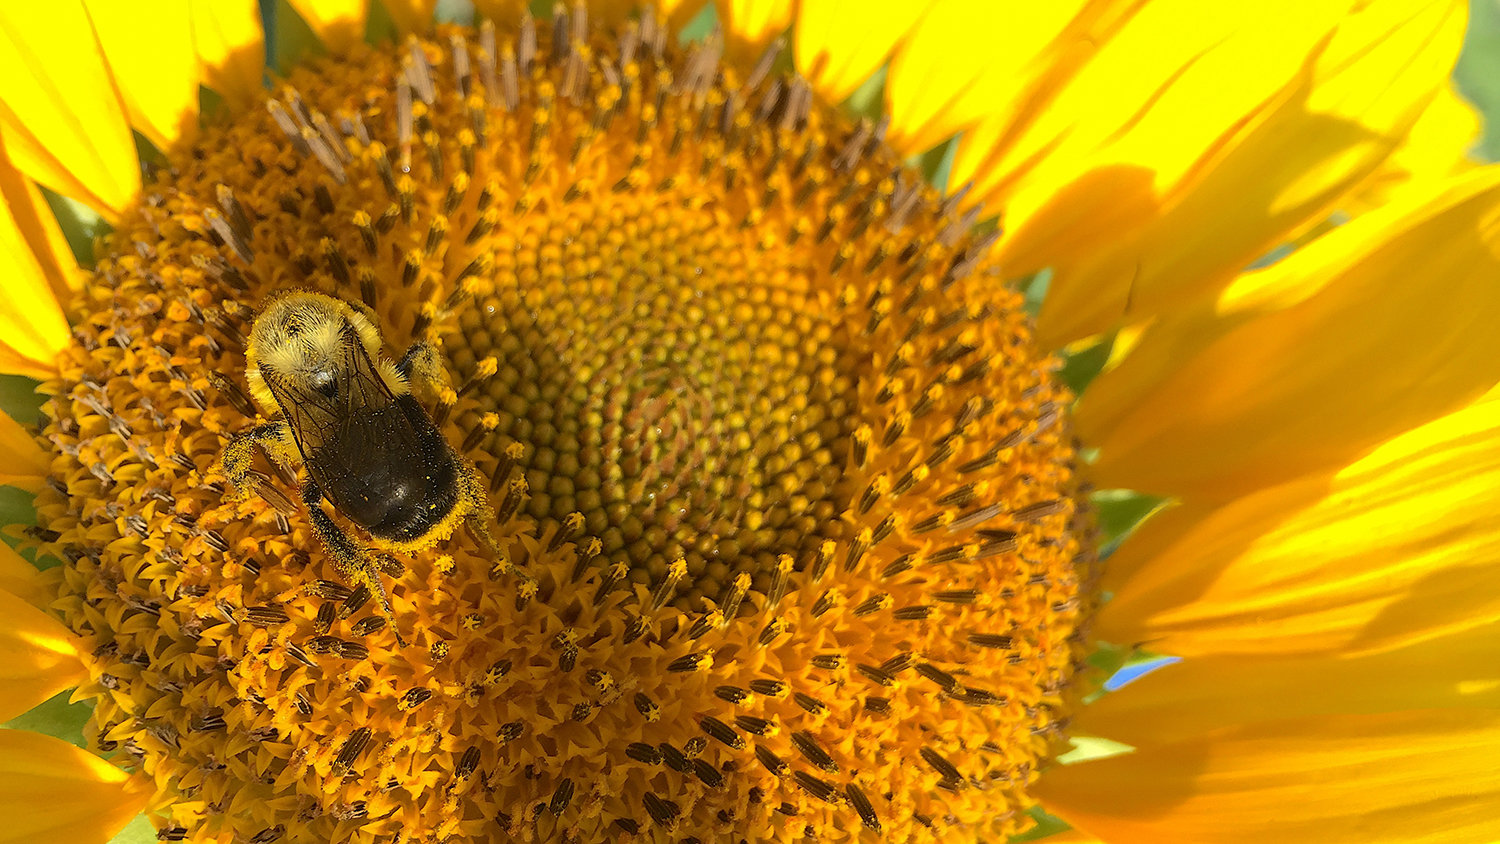 sunflower pollen has medicinal protective effects on bees